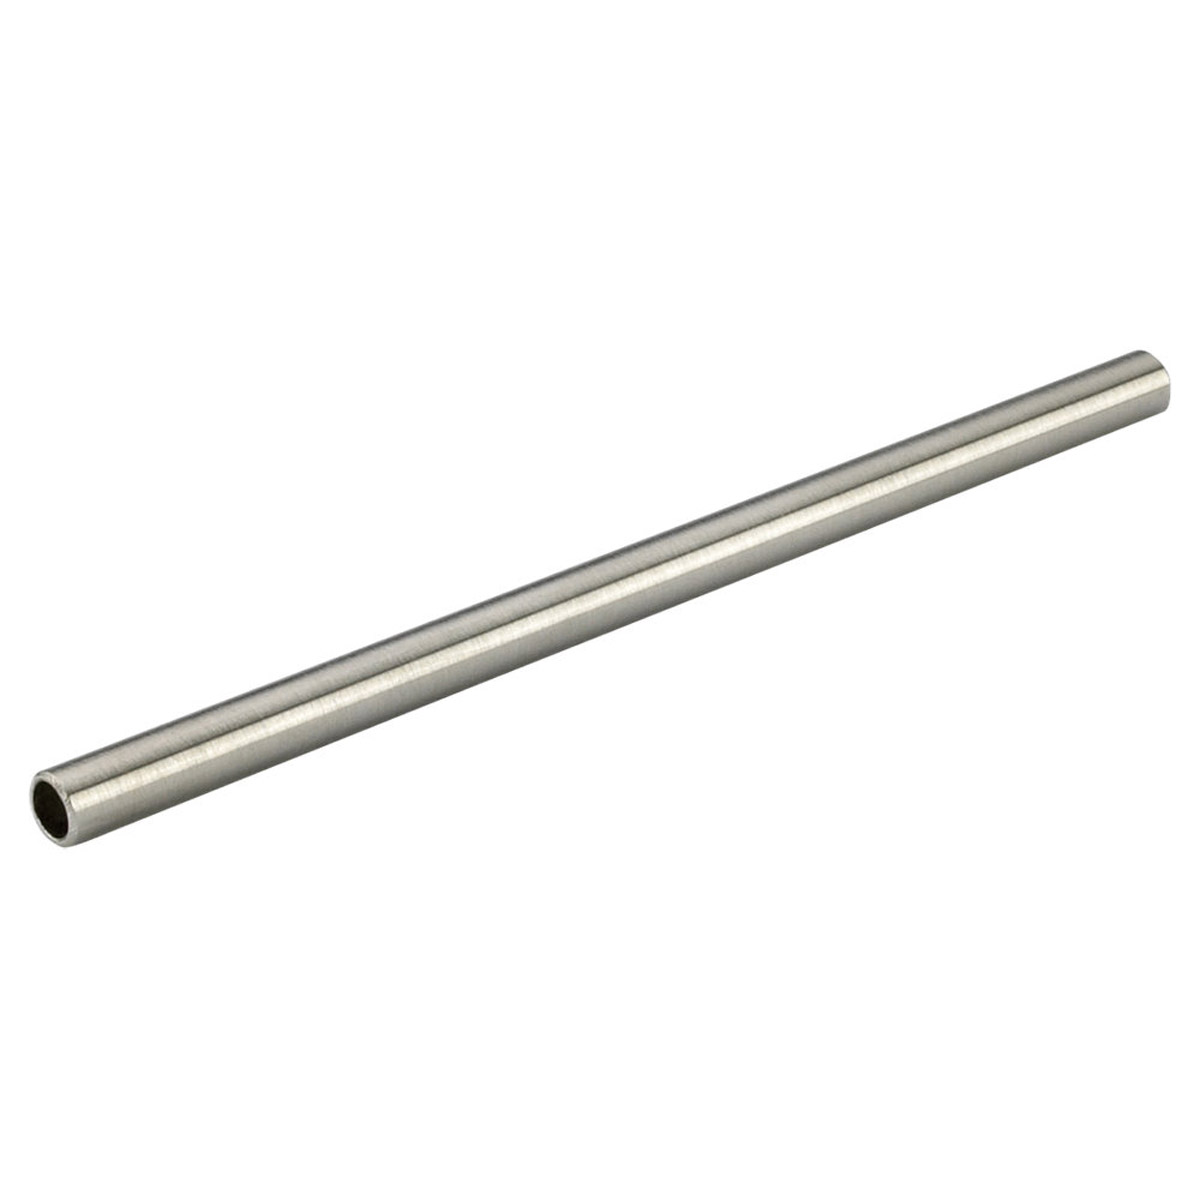 Sea Gull Lighting Ambiance Rtx 47in Extension Stem in Brushed Stainless 95324-98